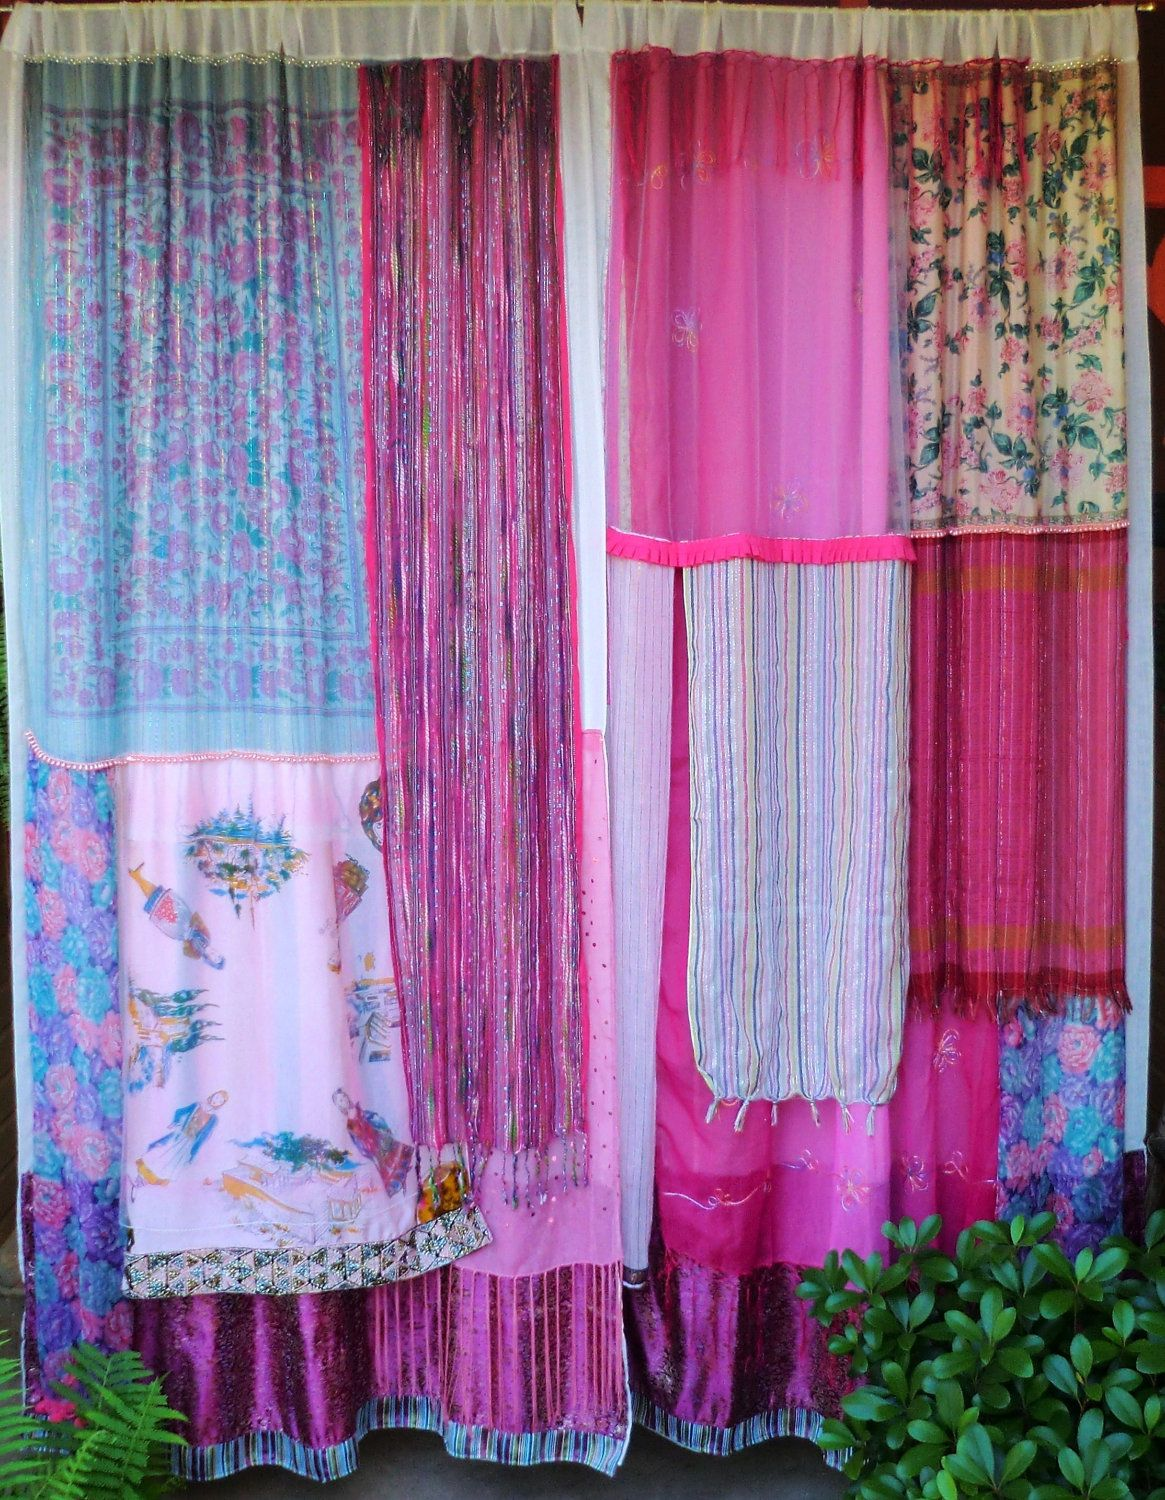 Rock the casbah handmade gypsy curtains bohemian global - Cortinas de bano transparentes ...